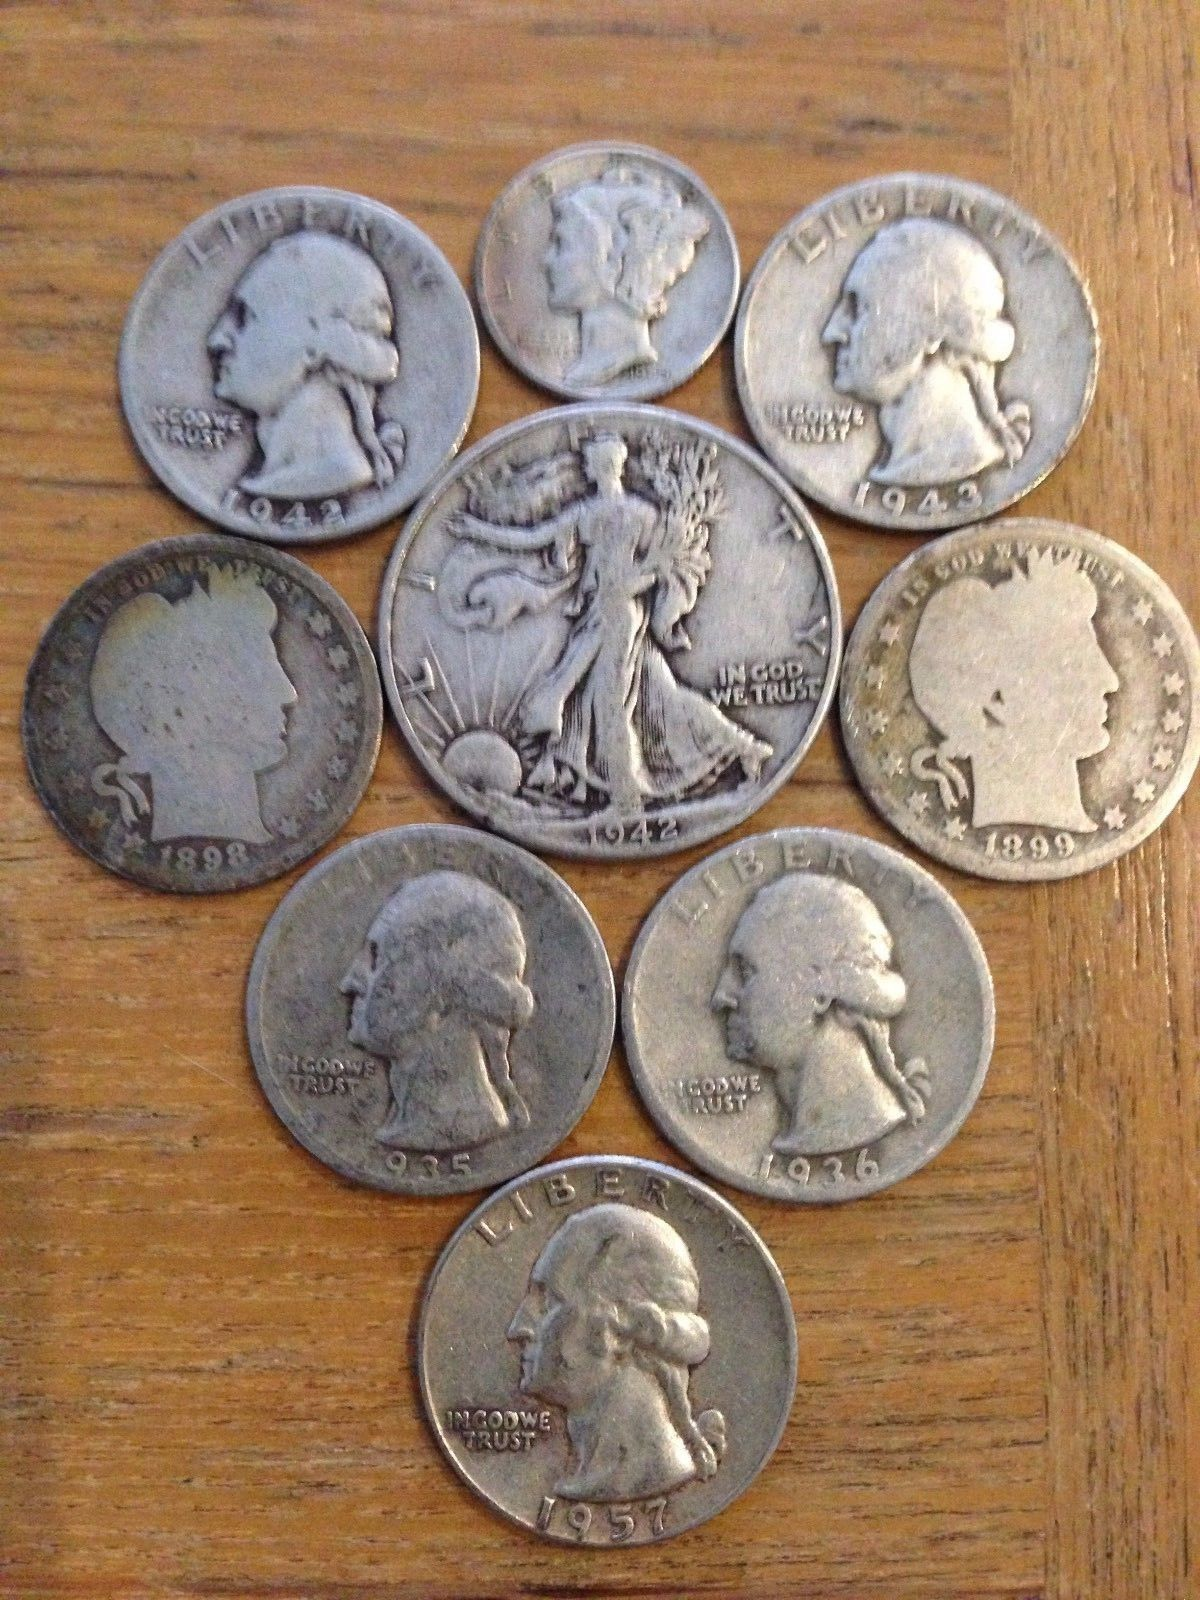 #coins Collection of US 90% Silver Coins - Walker Half Dollar , Old Quarters and a Dime please retweet